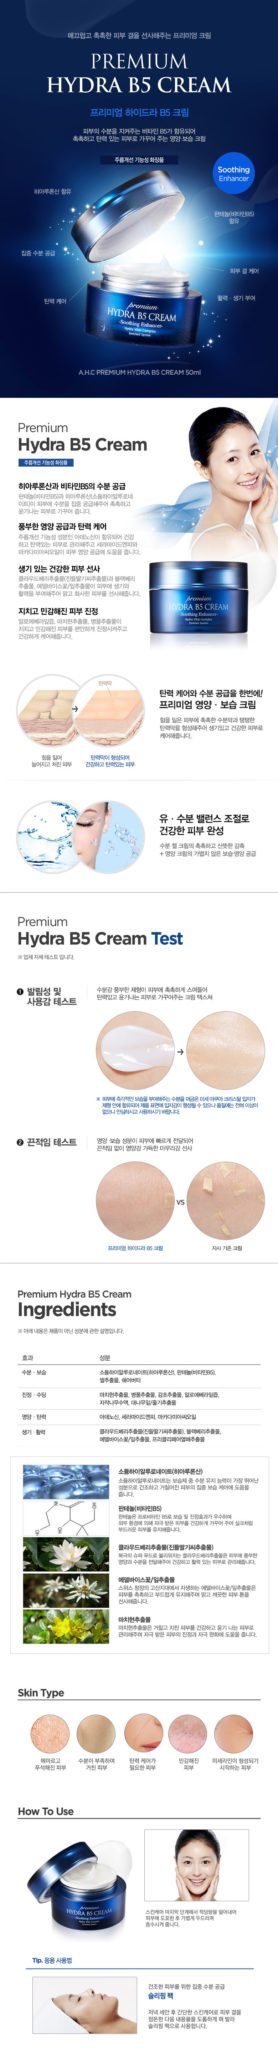 A.H.C Premium Hydra B5 Cream 50ml malaysia singapore indonesia